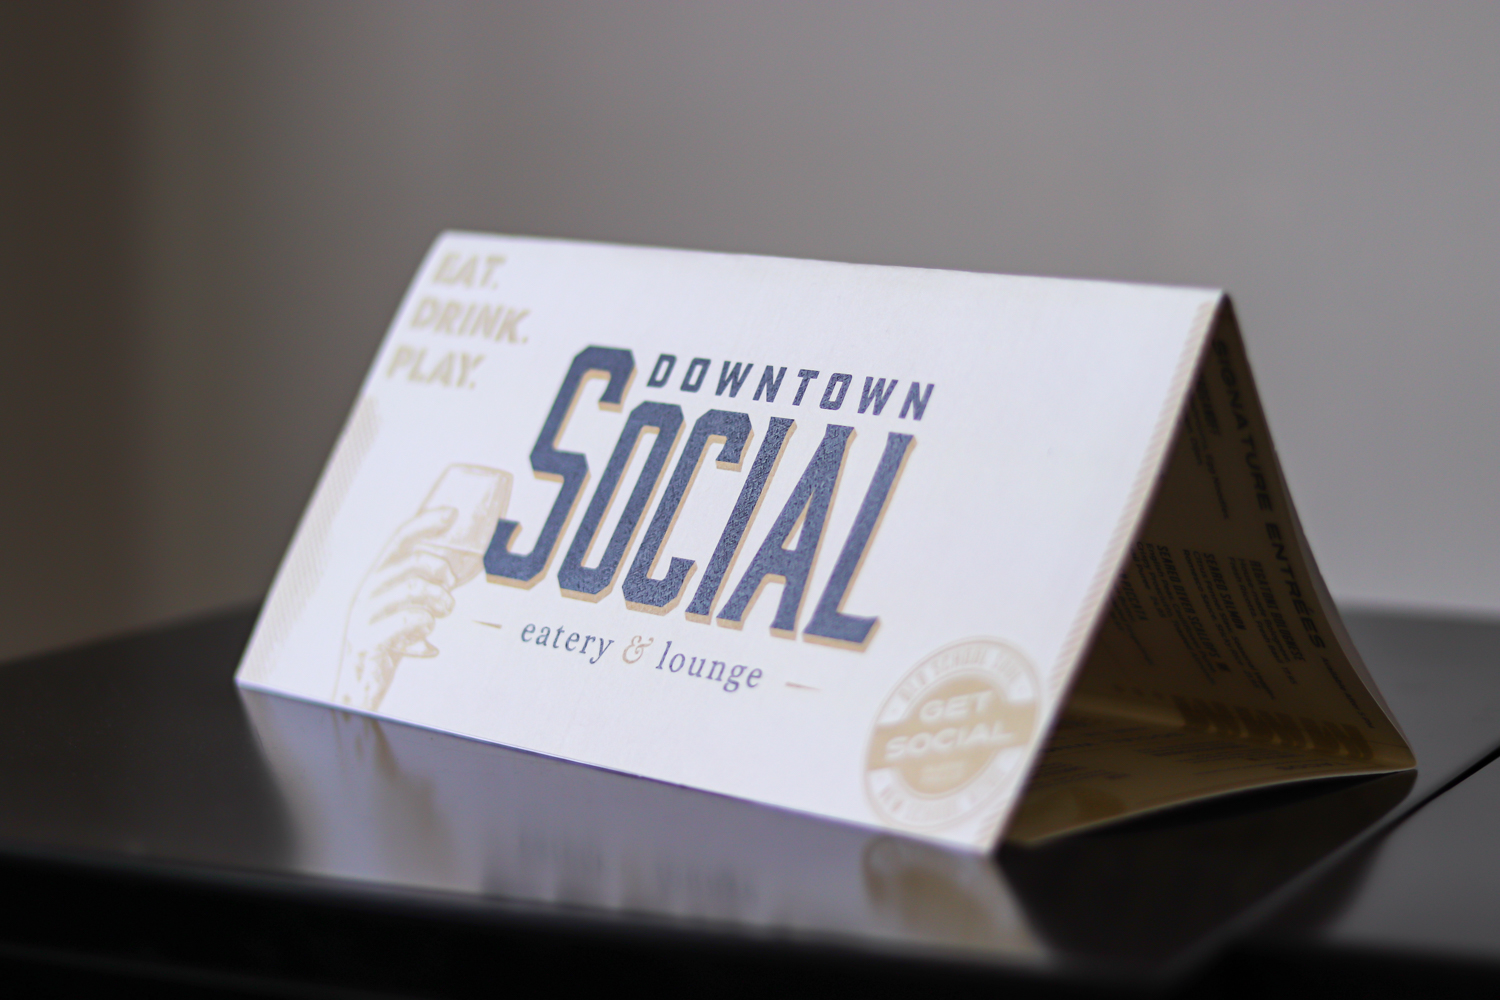 Let's Get Social - The design was intended to be as much a marketing piece as it was a functional menu. The horizontal, trifold layout allowed for a built-in table tent at every place setting.